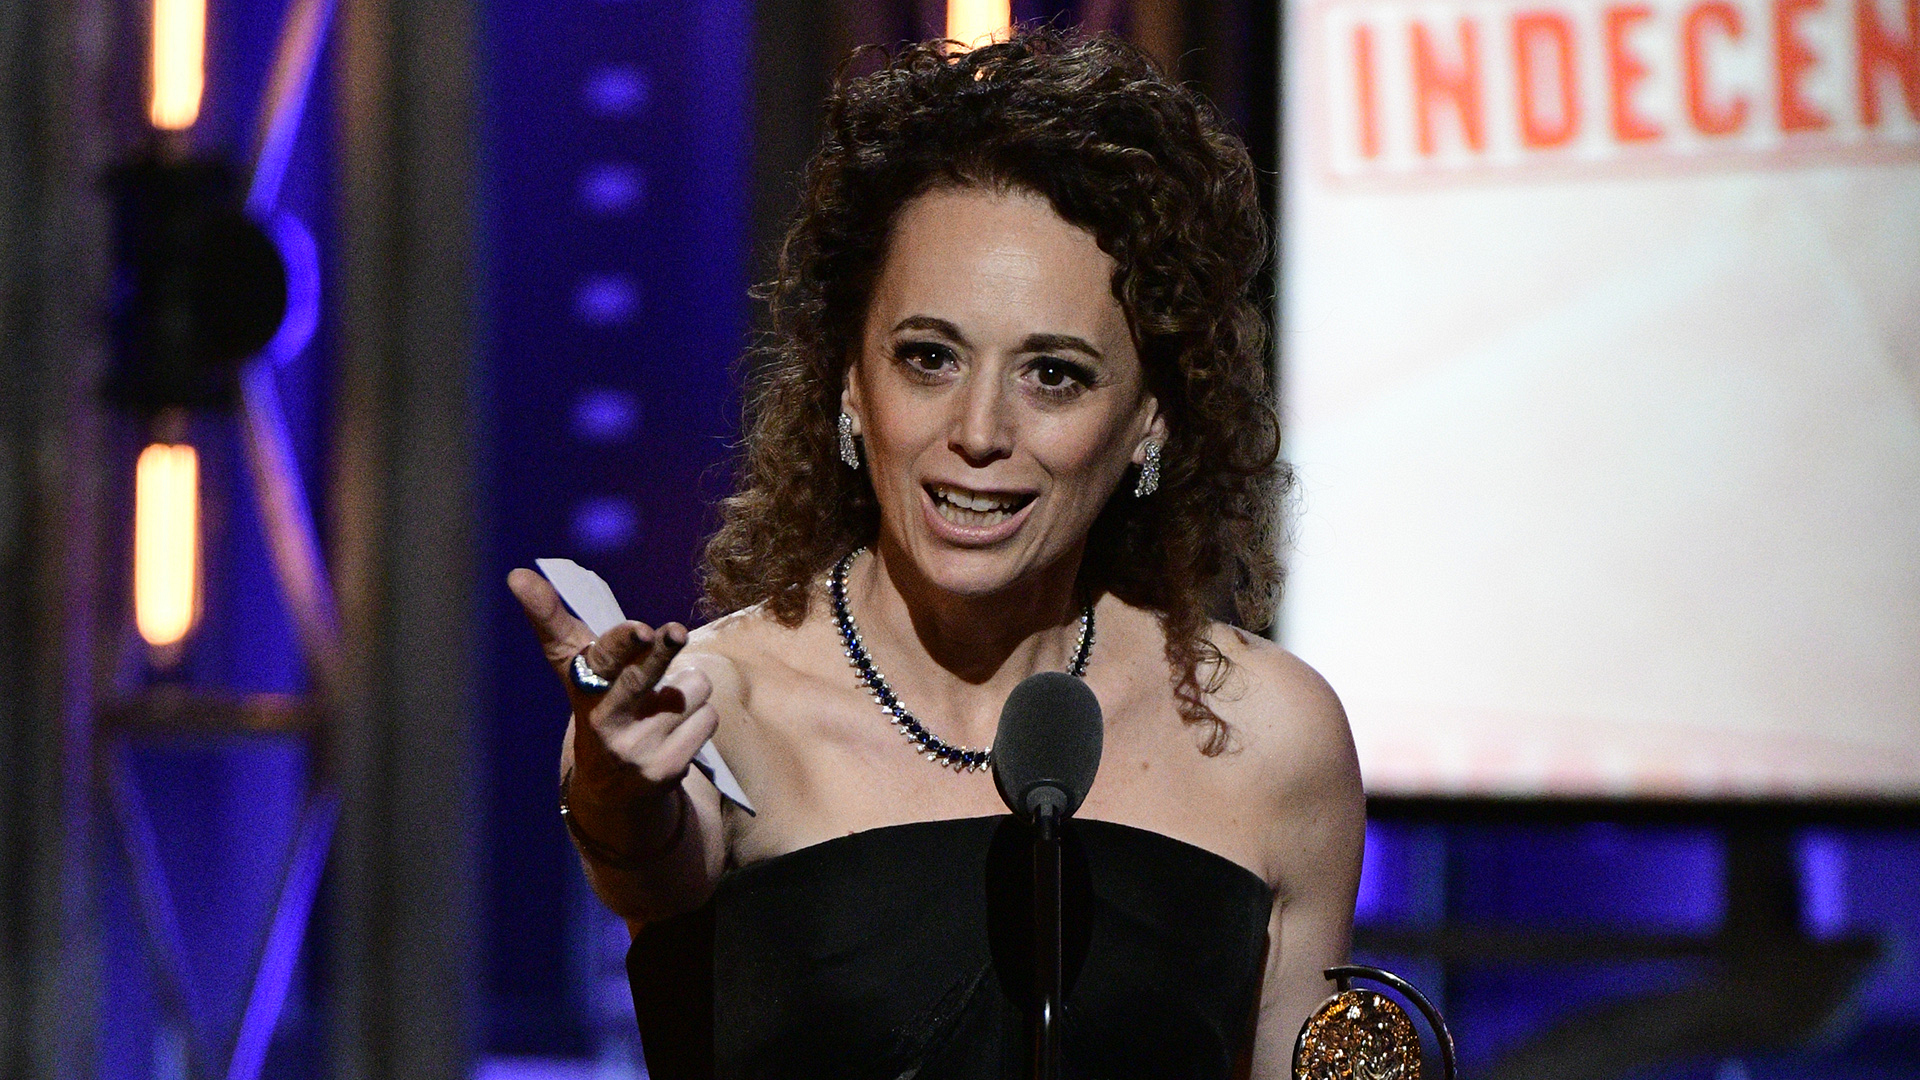 Rebecca Taichman wins the 71st Annual Tony Award for Best Direction of a Play